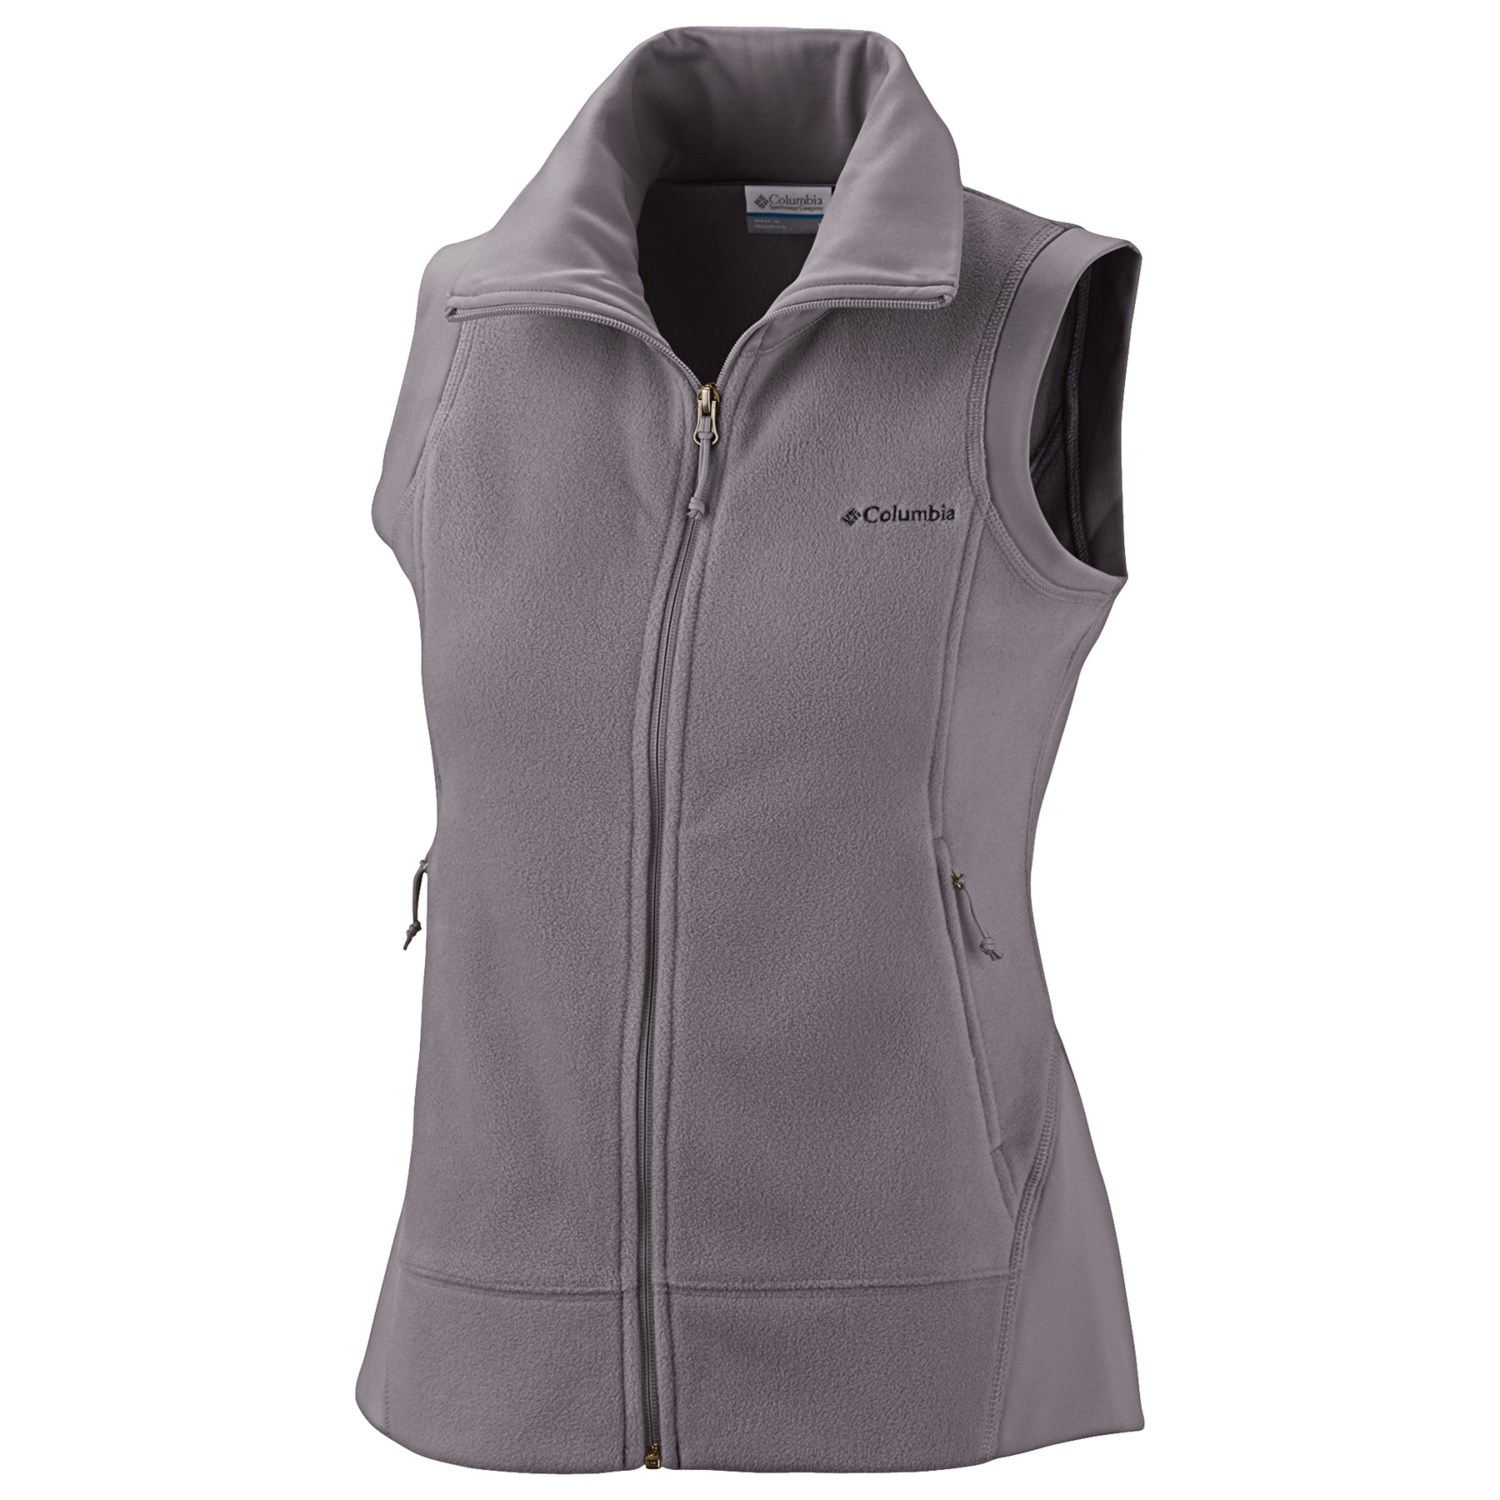 Shop for Women's Fleece Jackets at REI - FREE SHIPPING With $50 minimum purchase. Top quality, great selection and expert advice you can trust. % Satisfaction Guarantee.